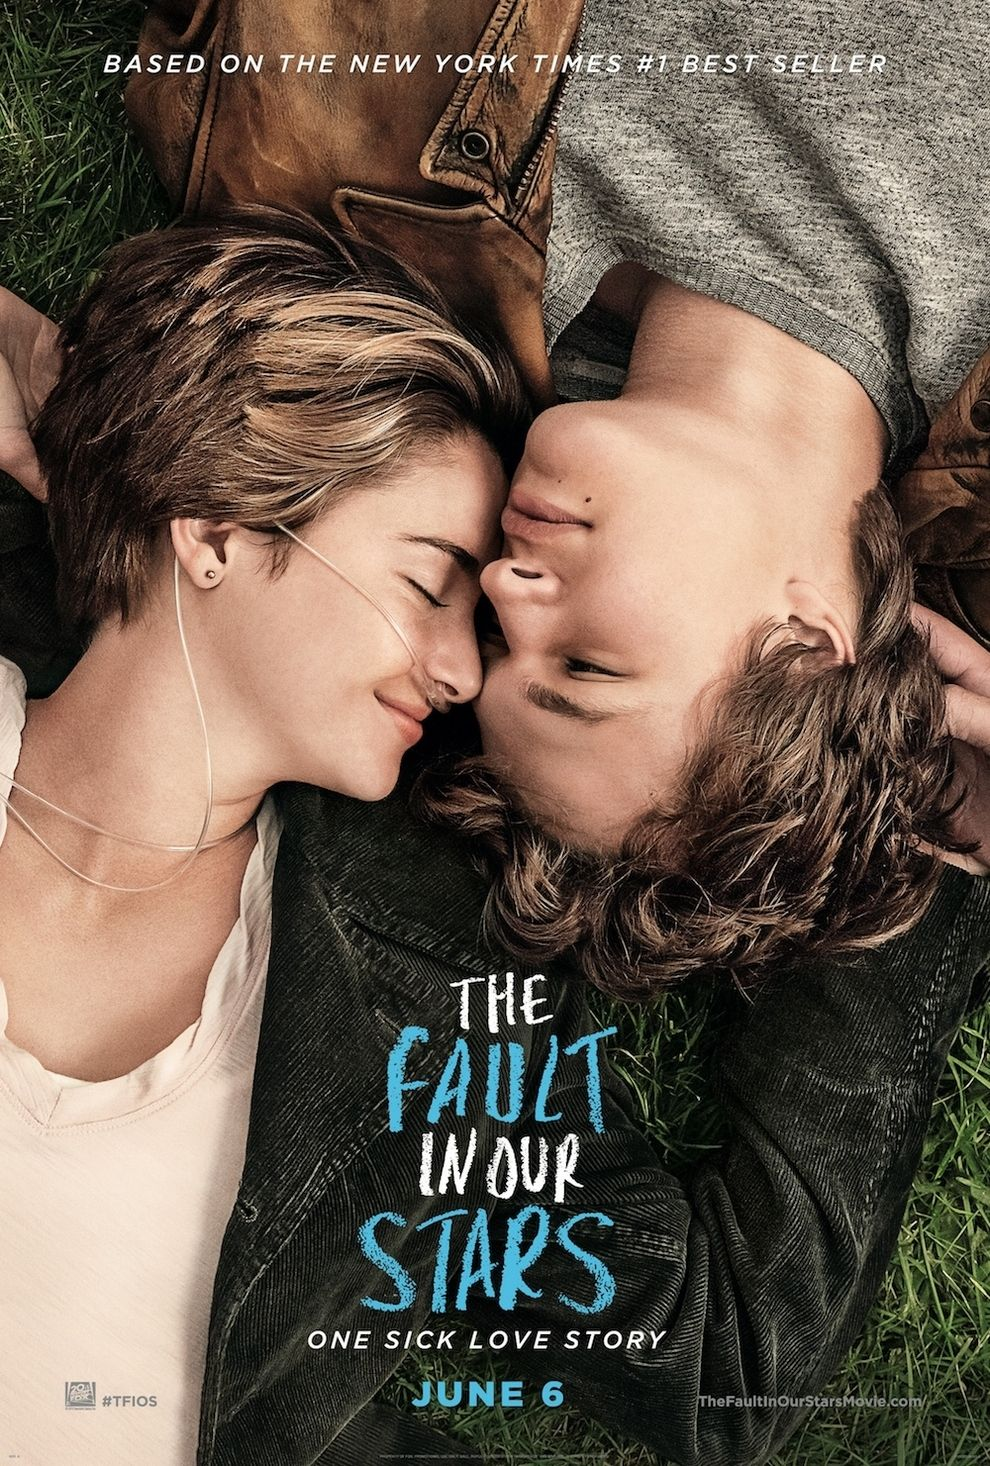 The Fault In Our Stars Poster Will Make You Feel Feelings